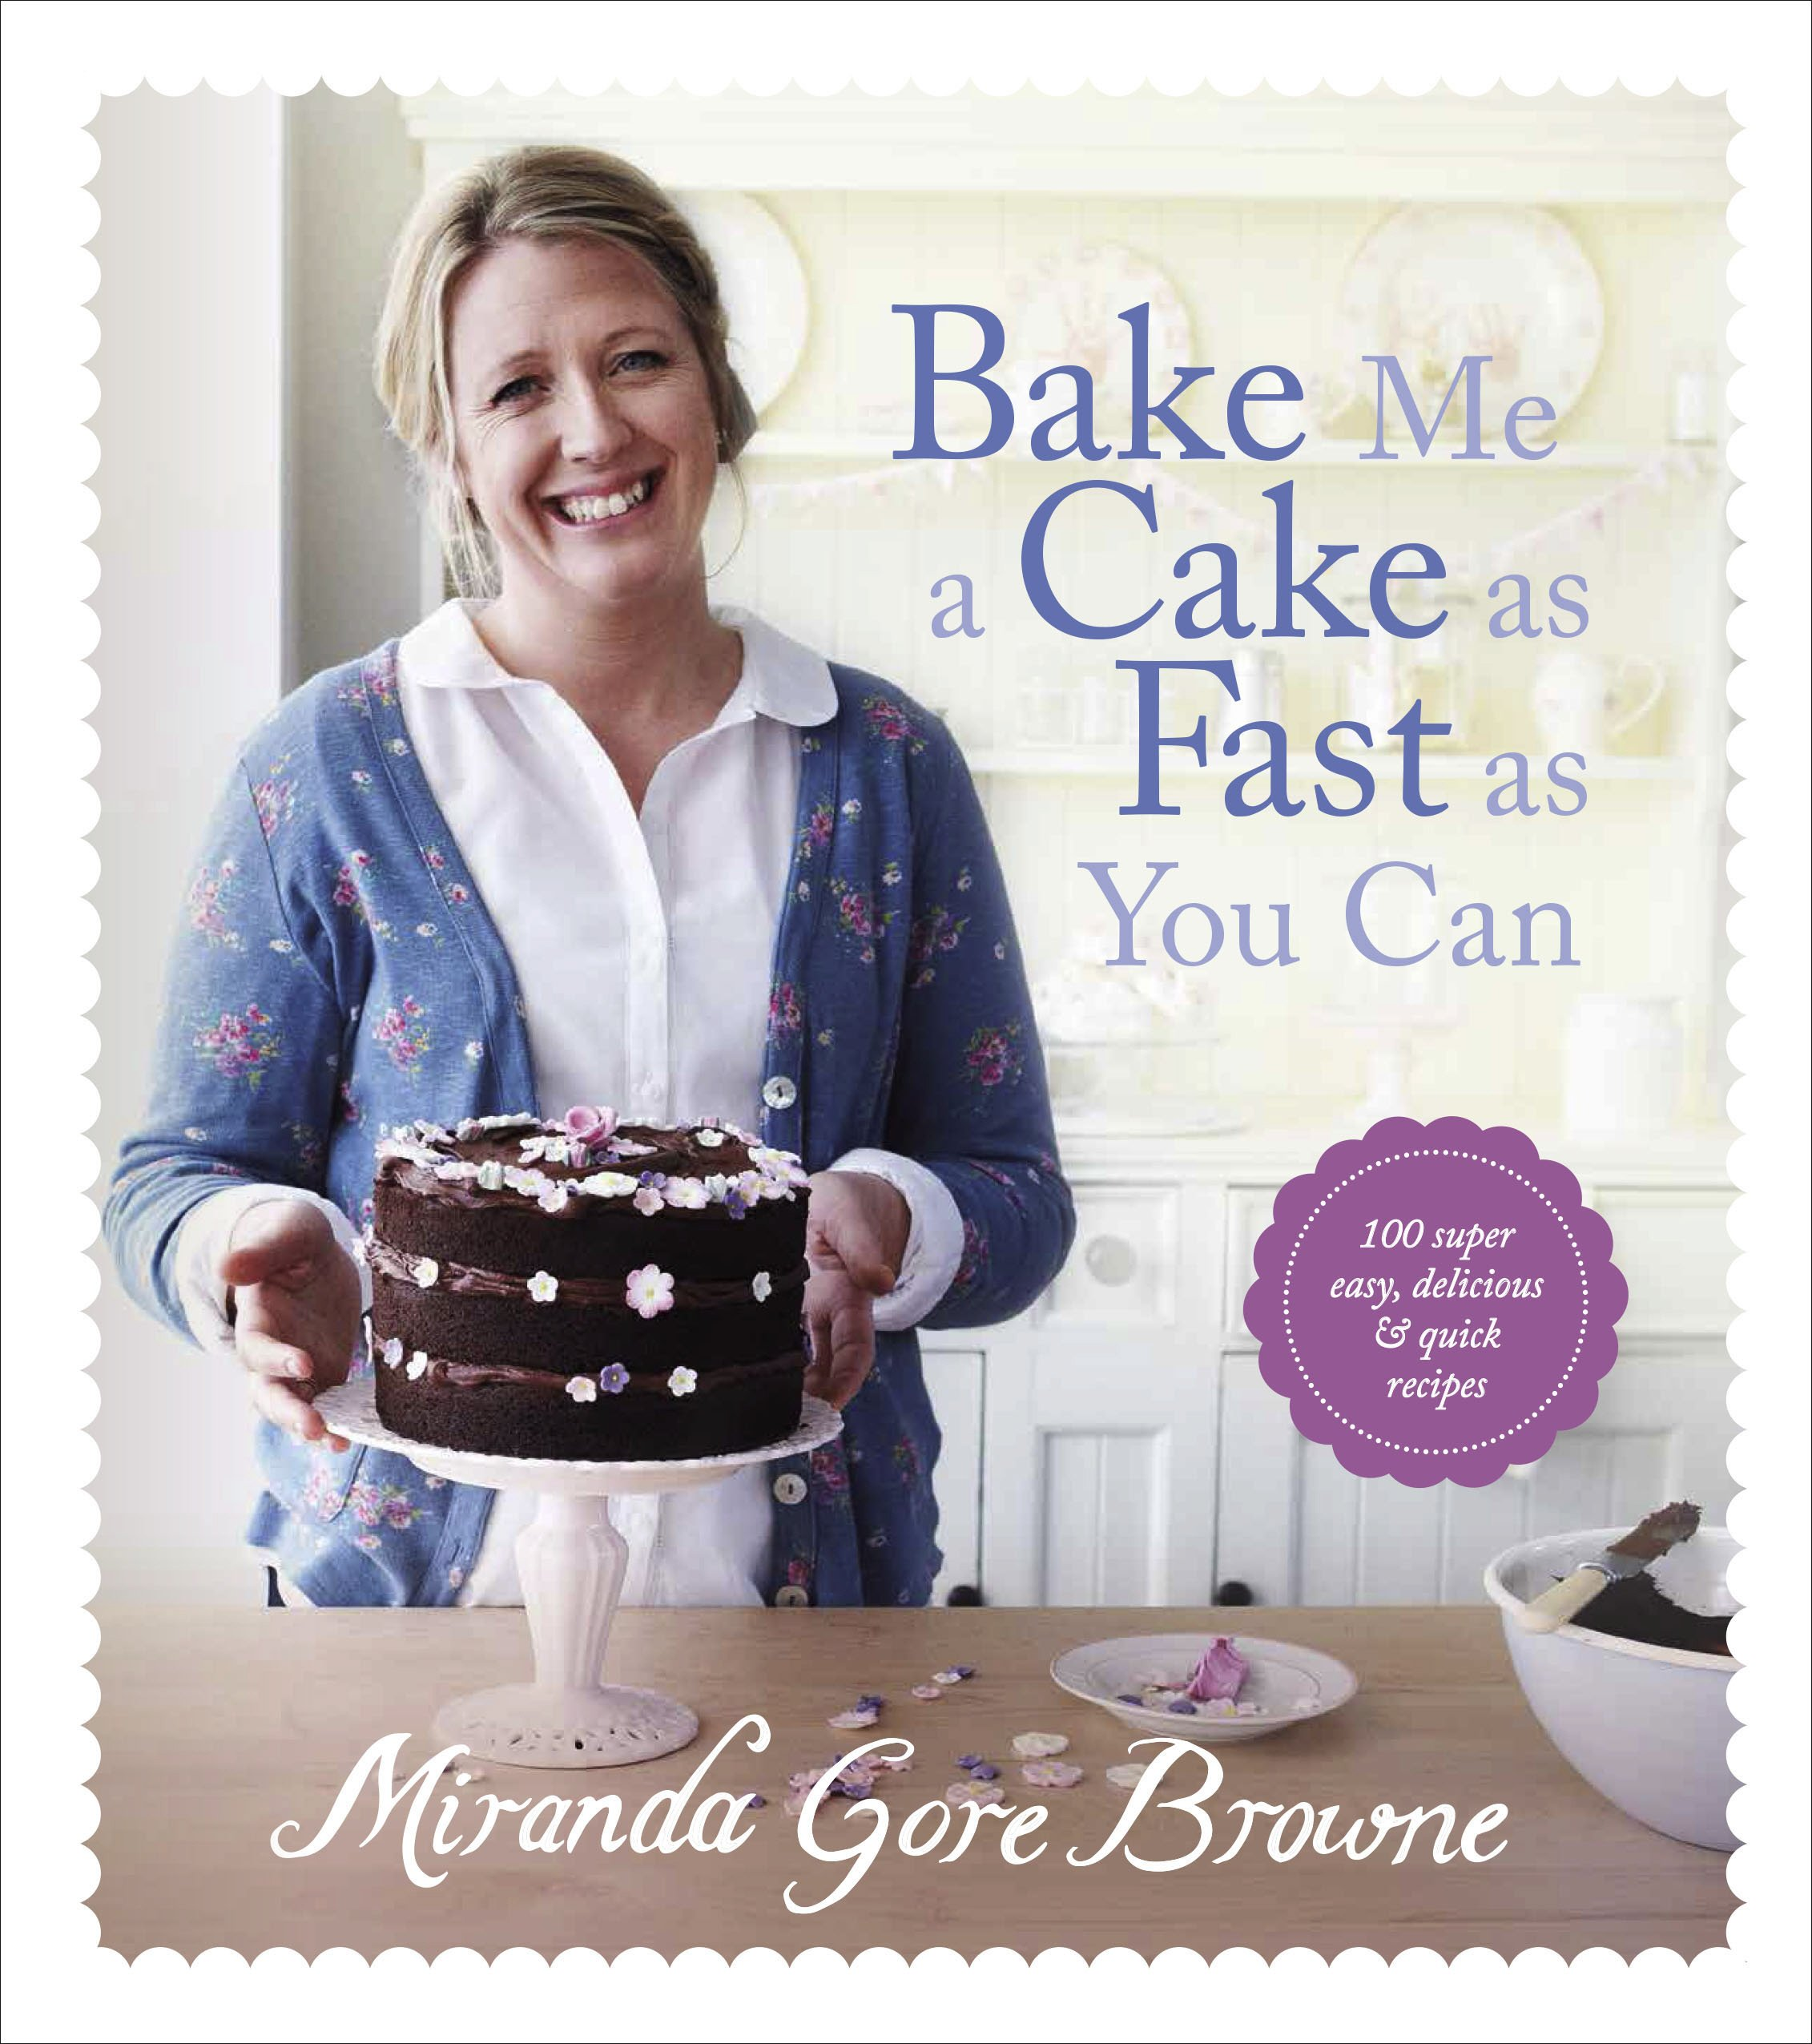 Bake Me A Cake As Fast You Can Over 100 Super Easy And Delicious Recipes Hardcover 28 Aug 2014